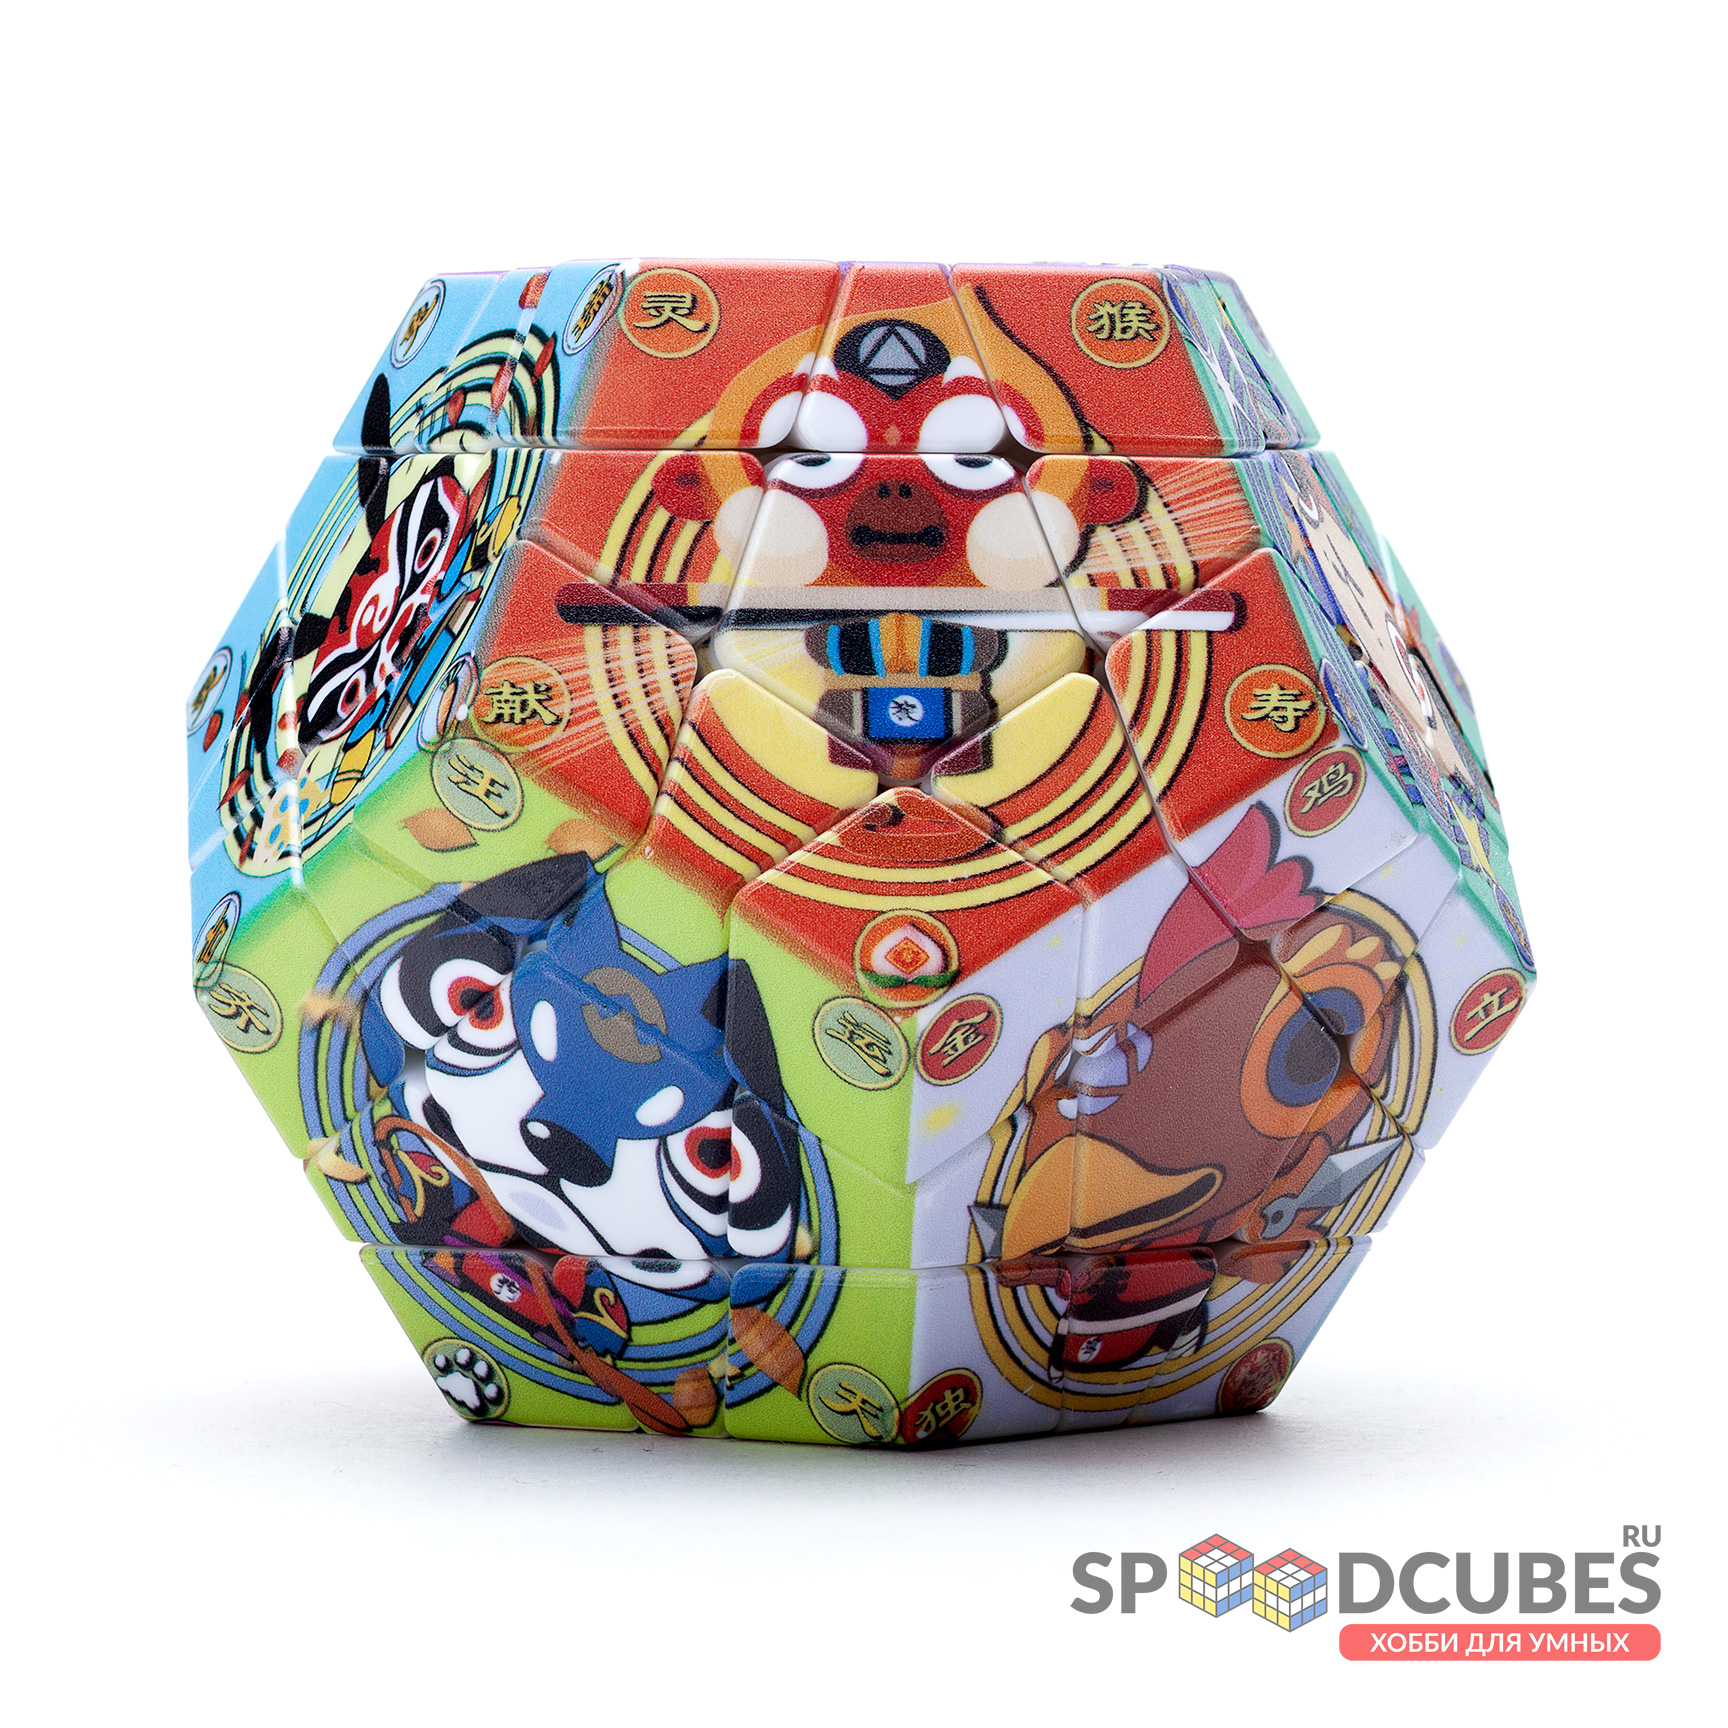 Z Megaminx Chinese 12-years Calendar